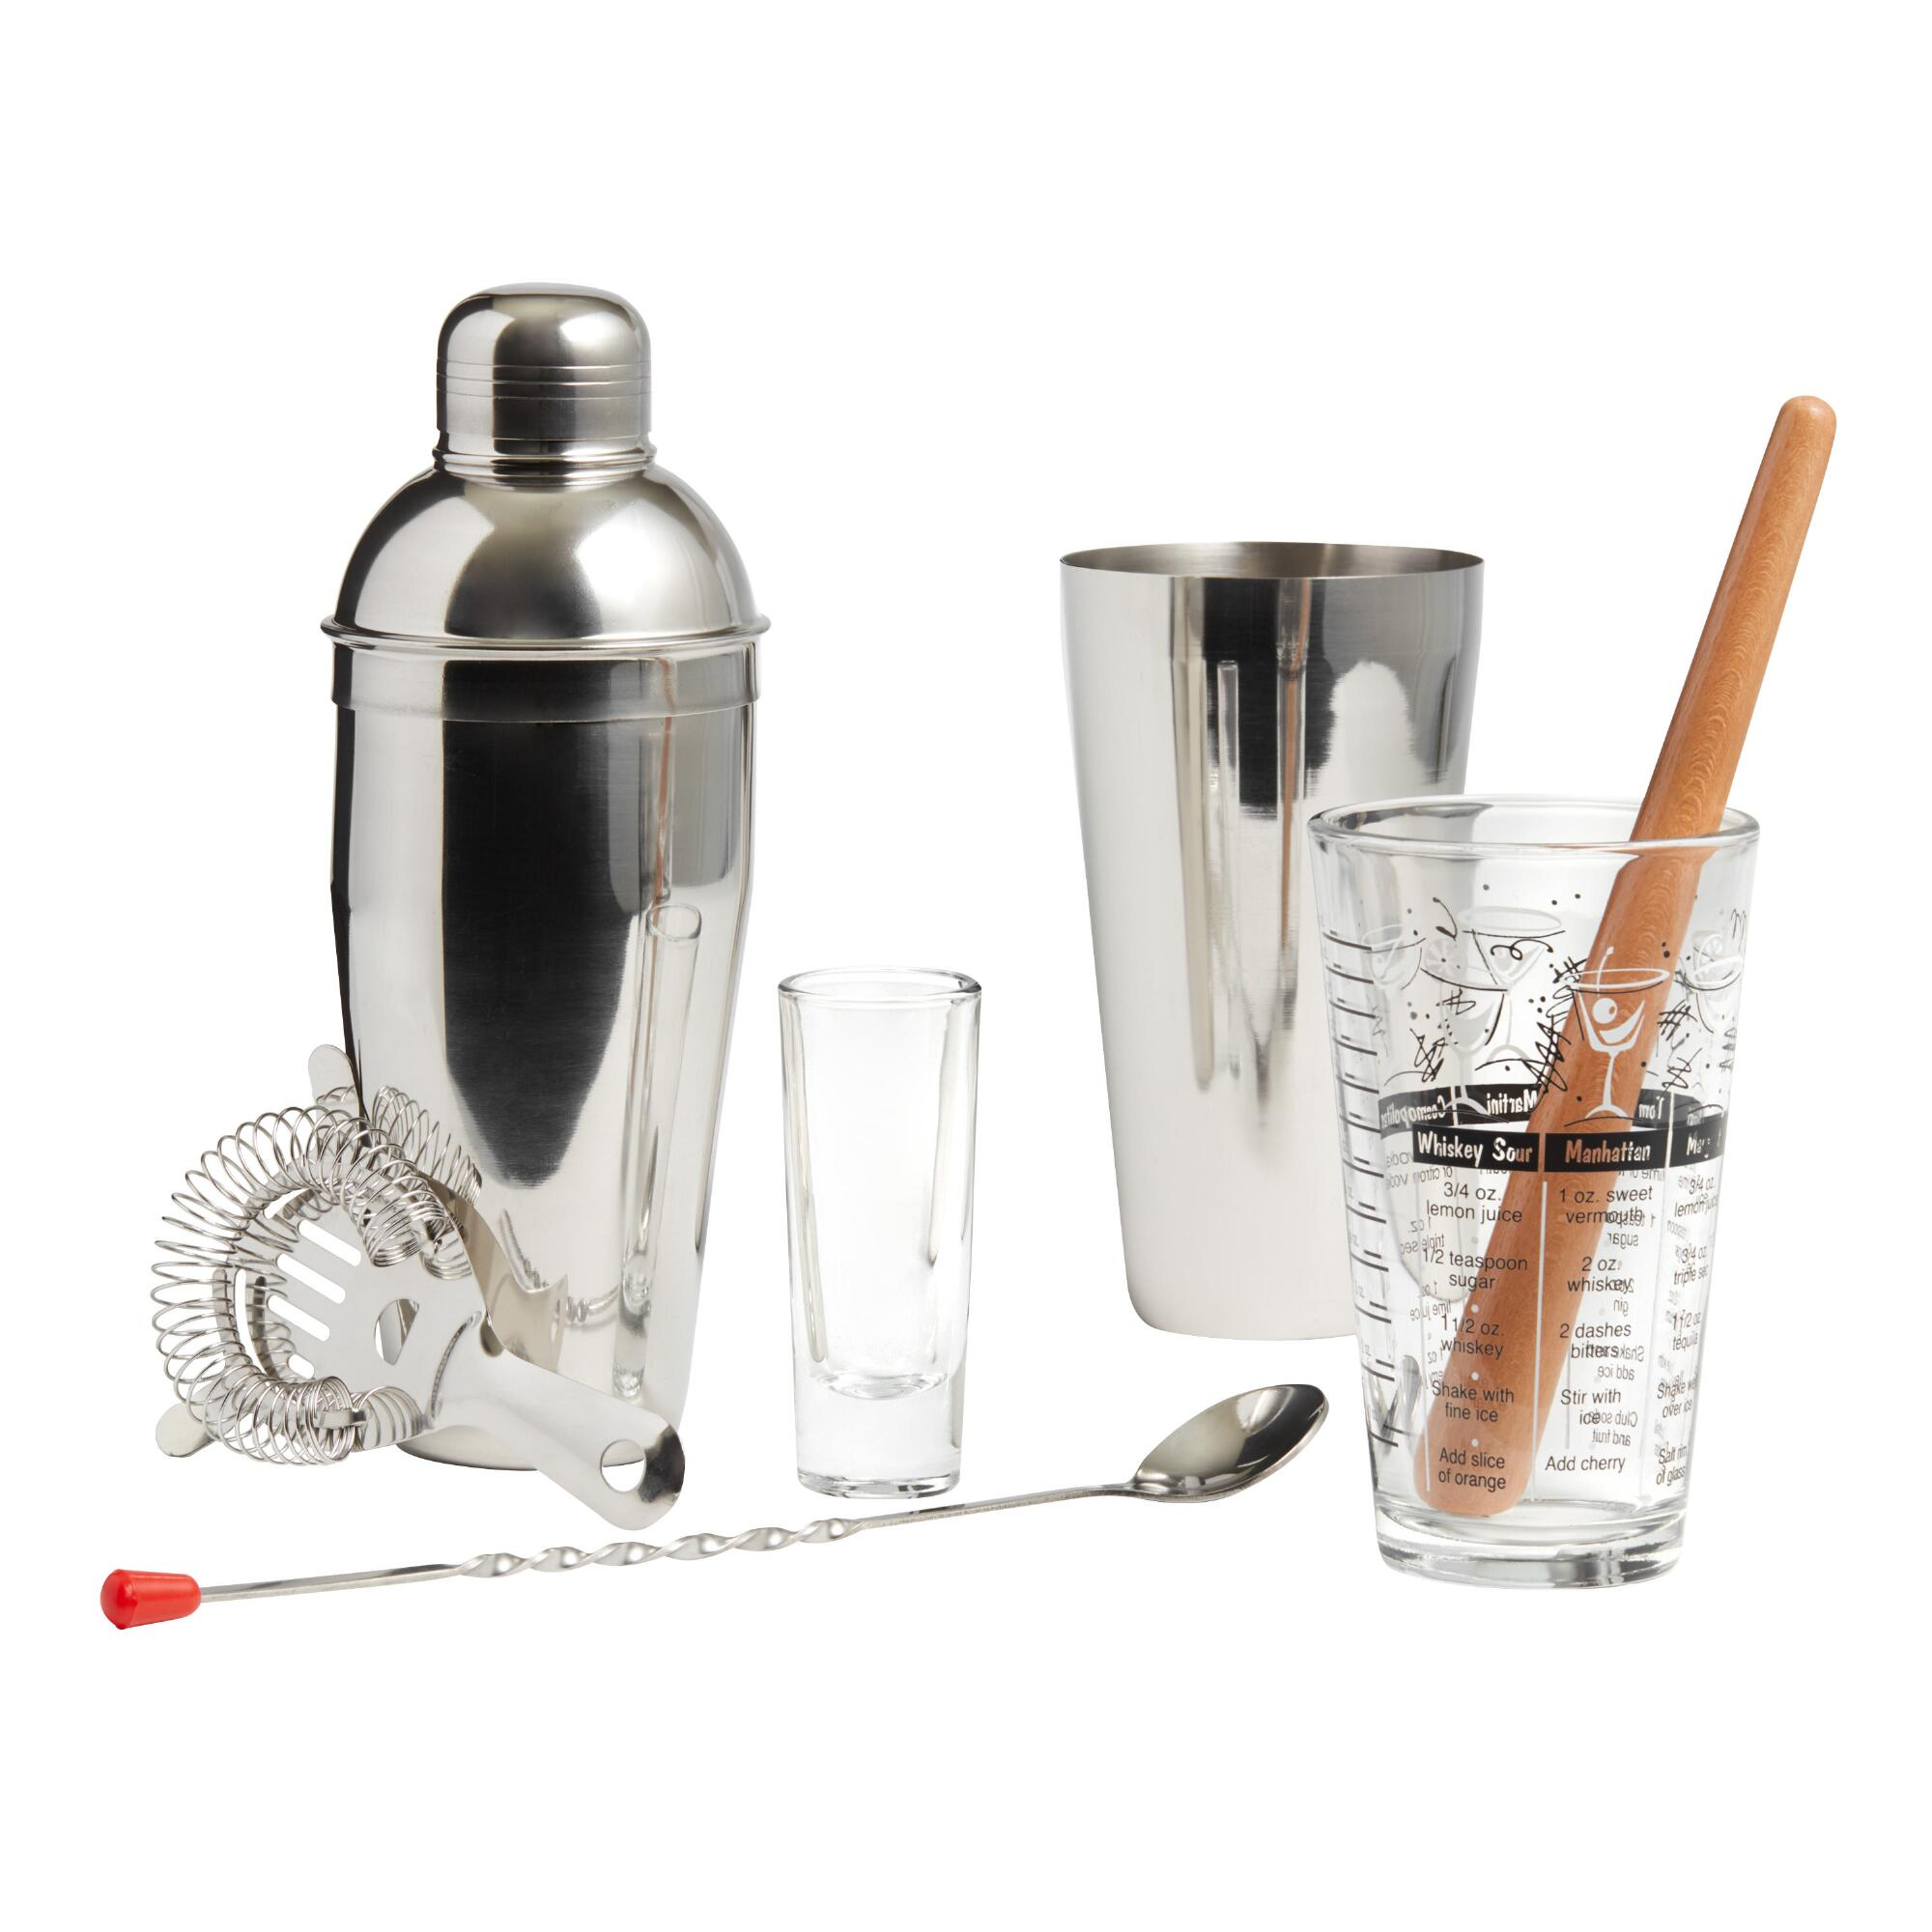 Mixologist Home Bar Tool 9 Piece Set $29.99